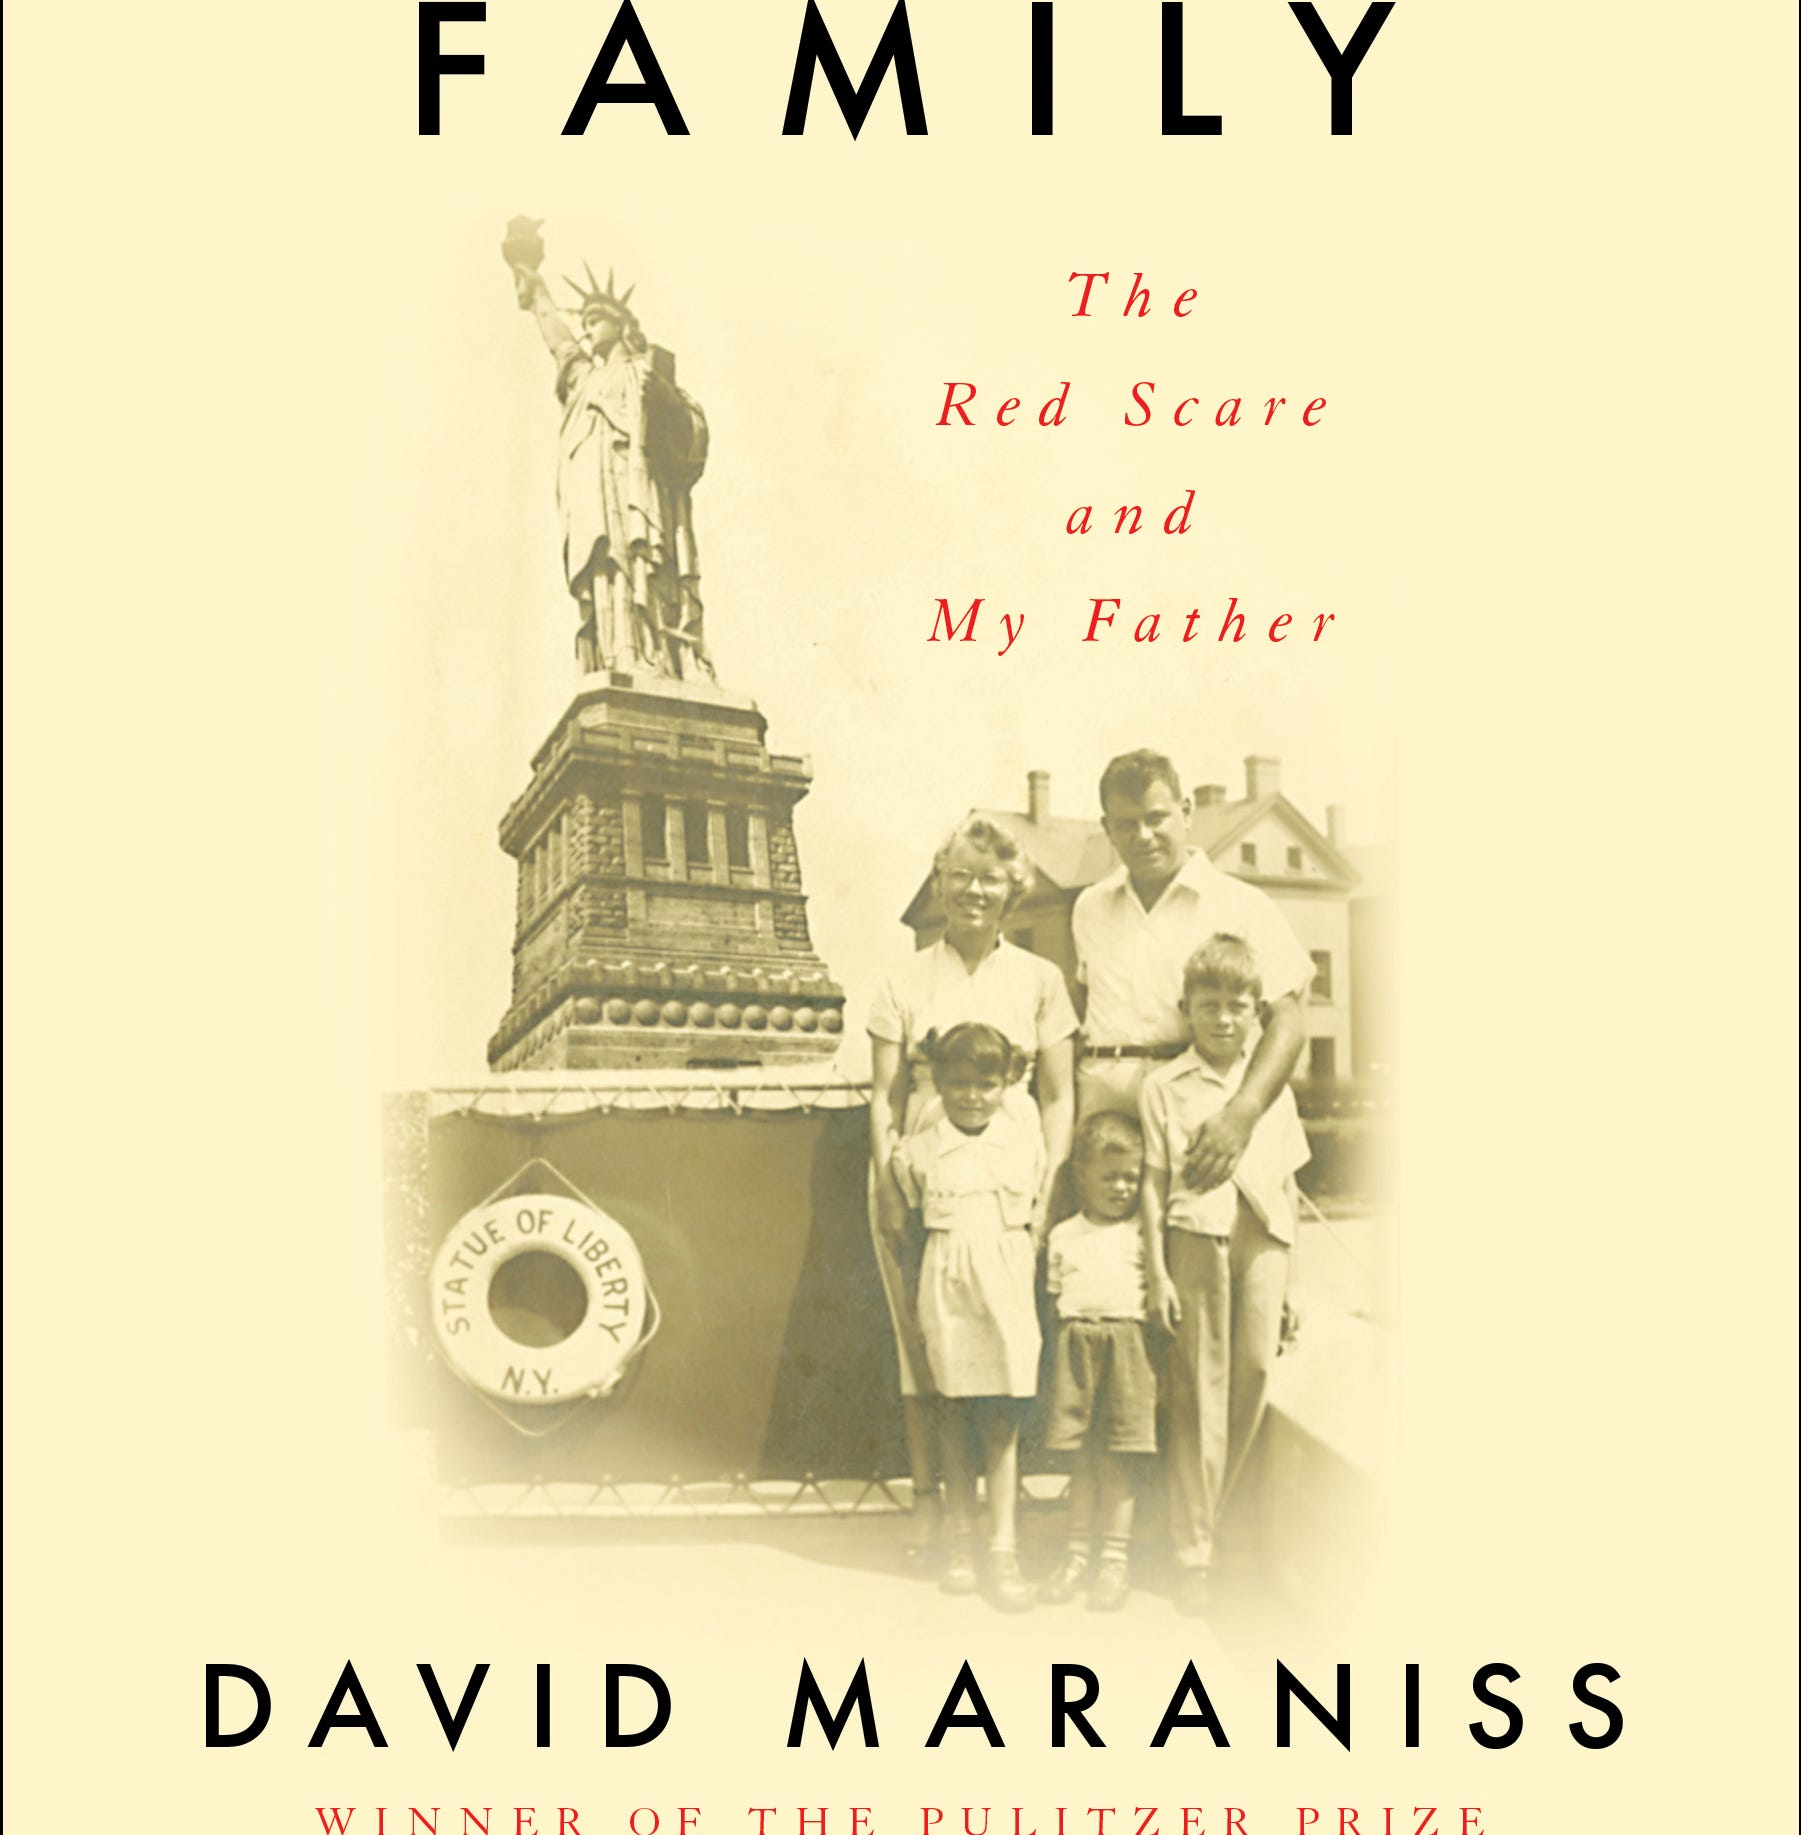 Q&A with noted author David Maraniss, who wrote 'A Good American Family'